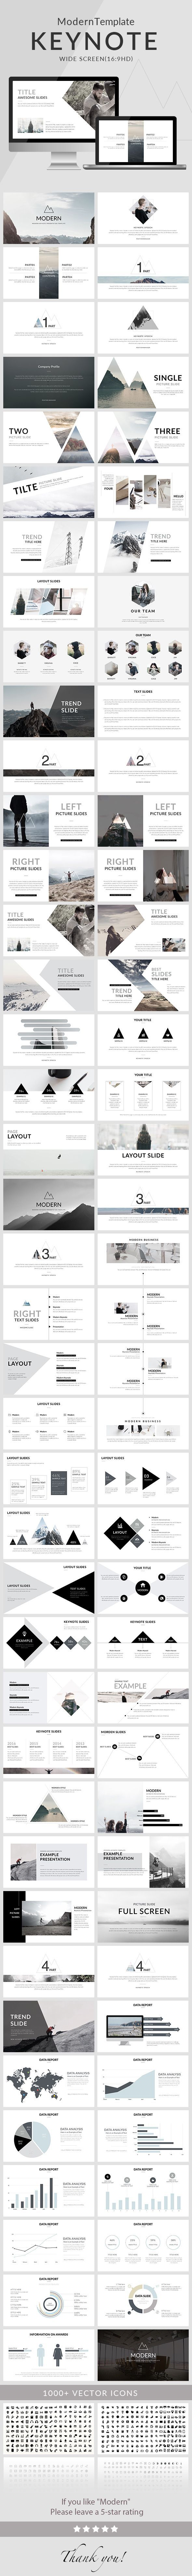 Modern - Clean trend Keynote Template - Creative Keynote Templates